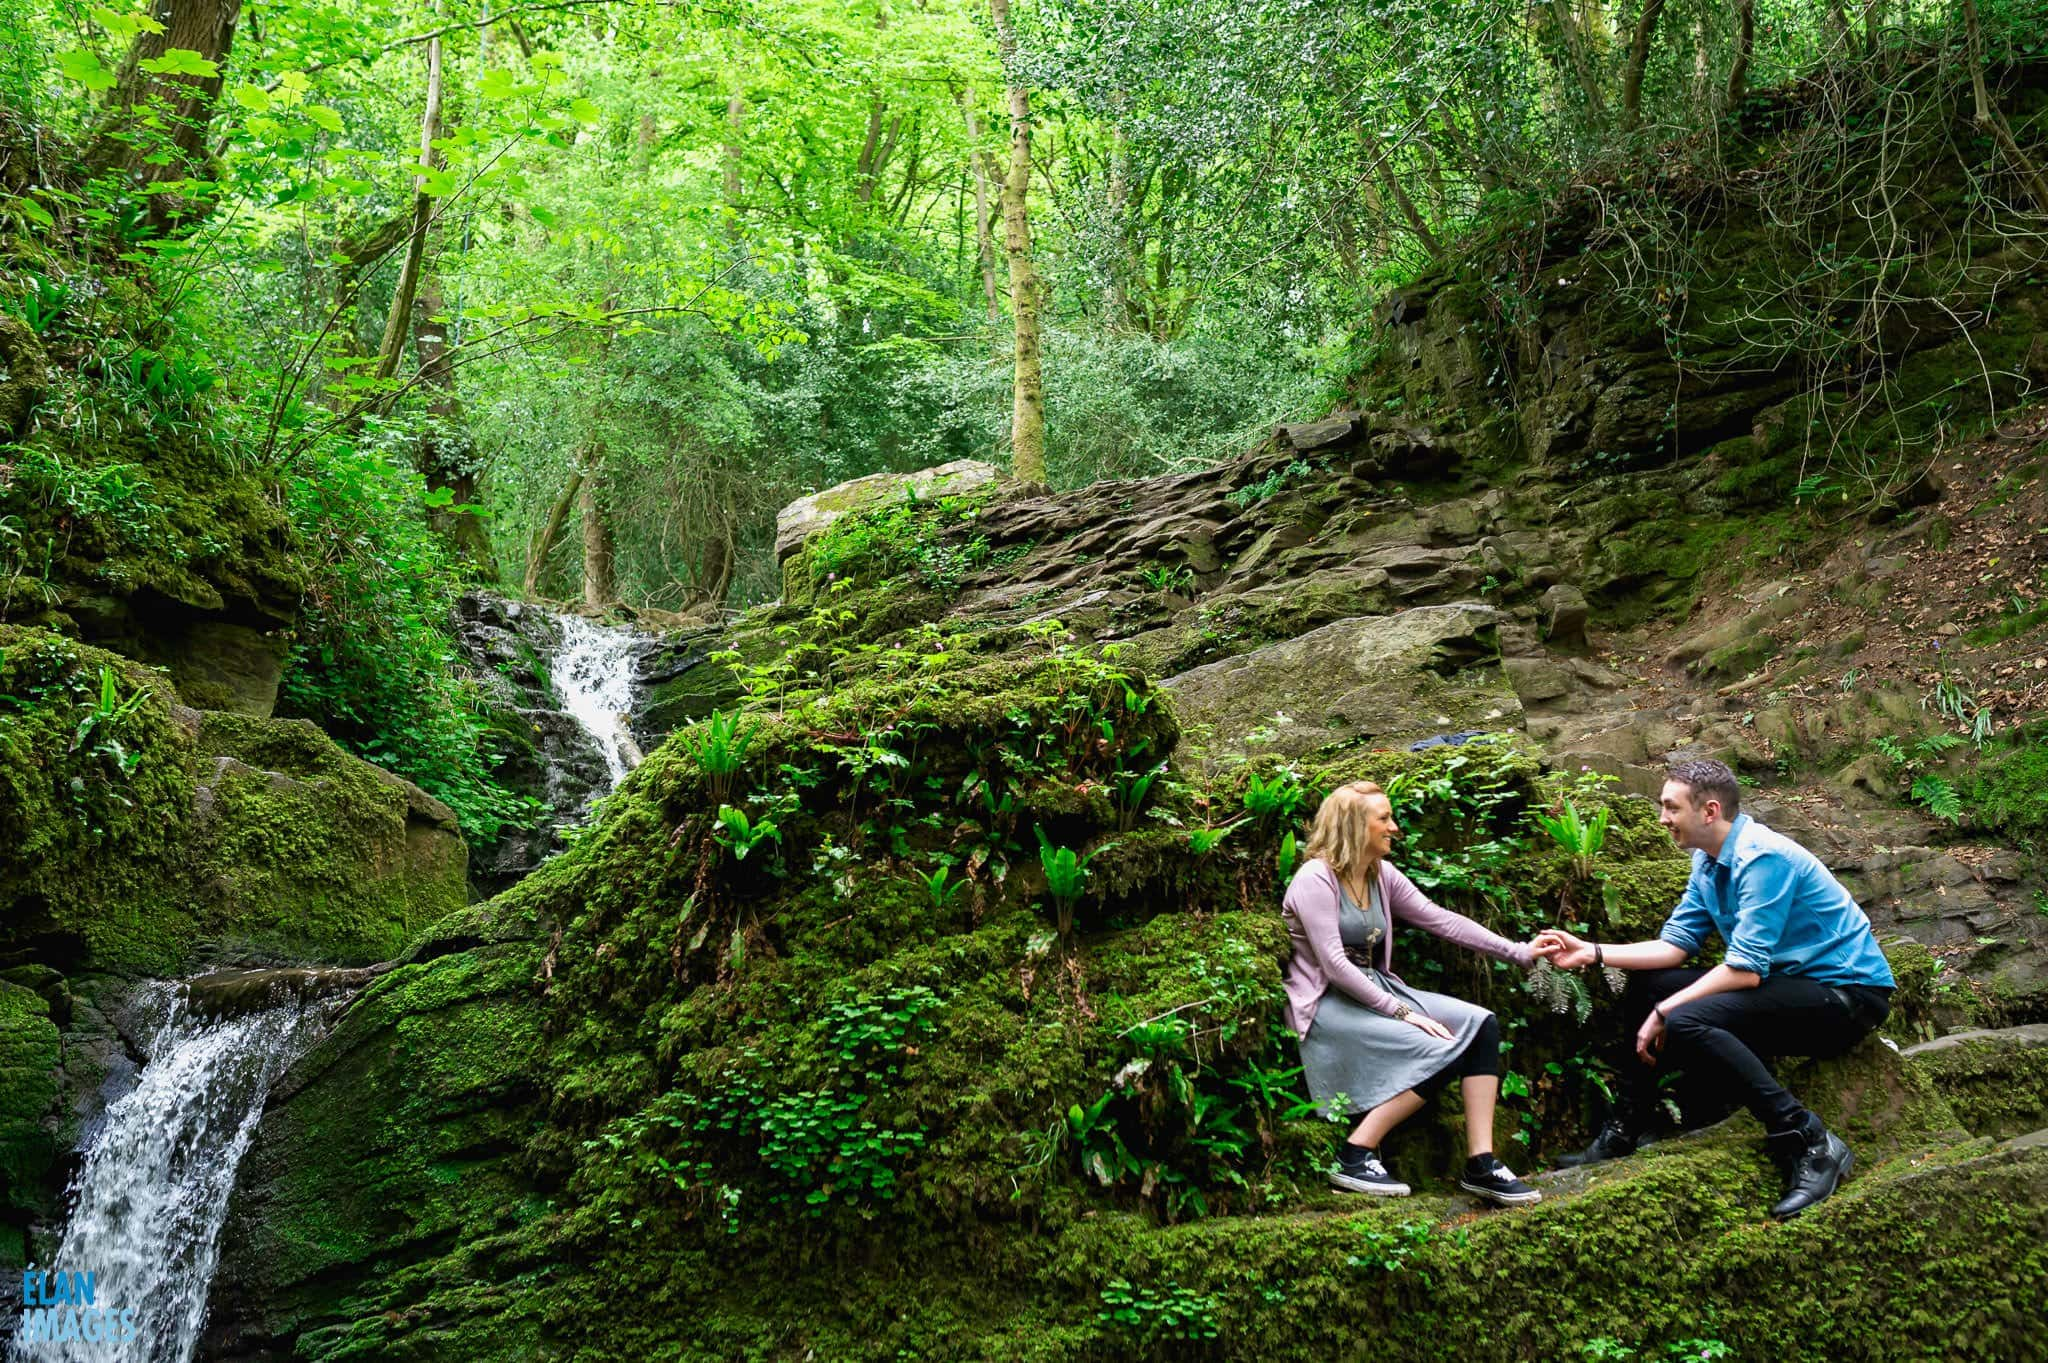 Engagement Photo Shoot in the Bluebell Woods near Bristol 56